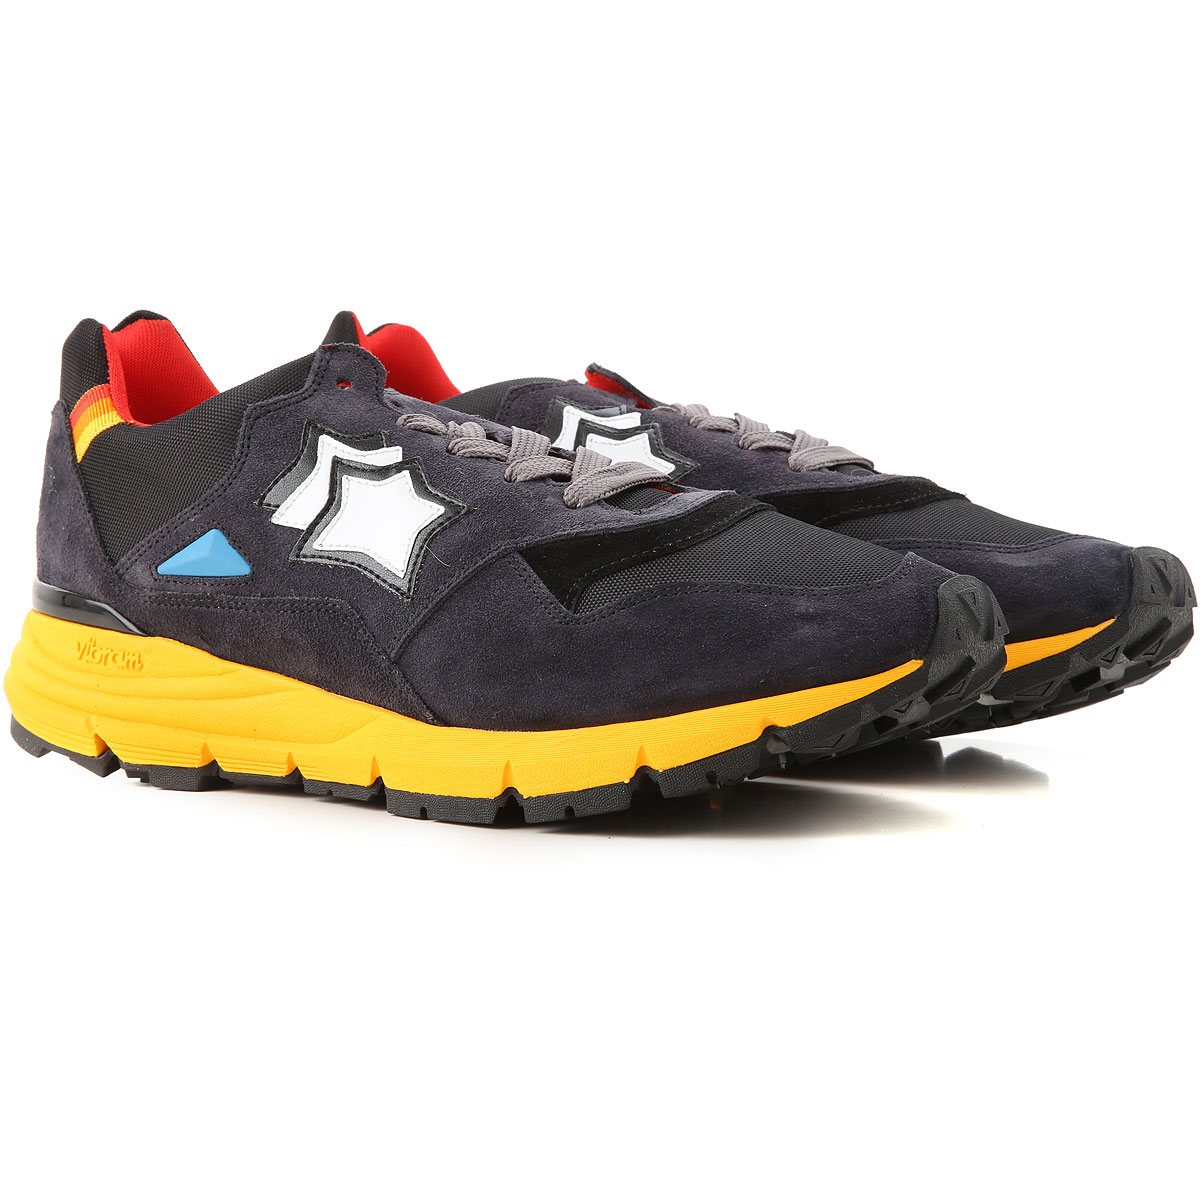 Atlantic Stars Sneakers for Men On Sale, Anthracite, Leather, 2019, 10 10.5 11.5 12 7.5 8 9